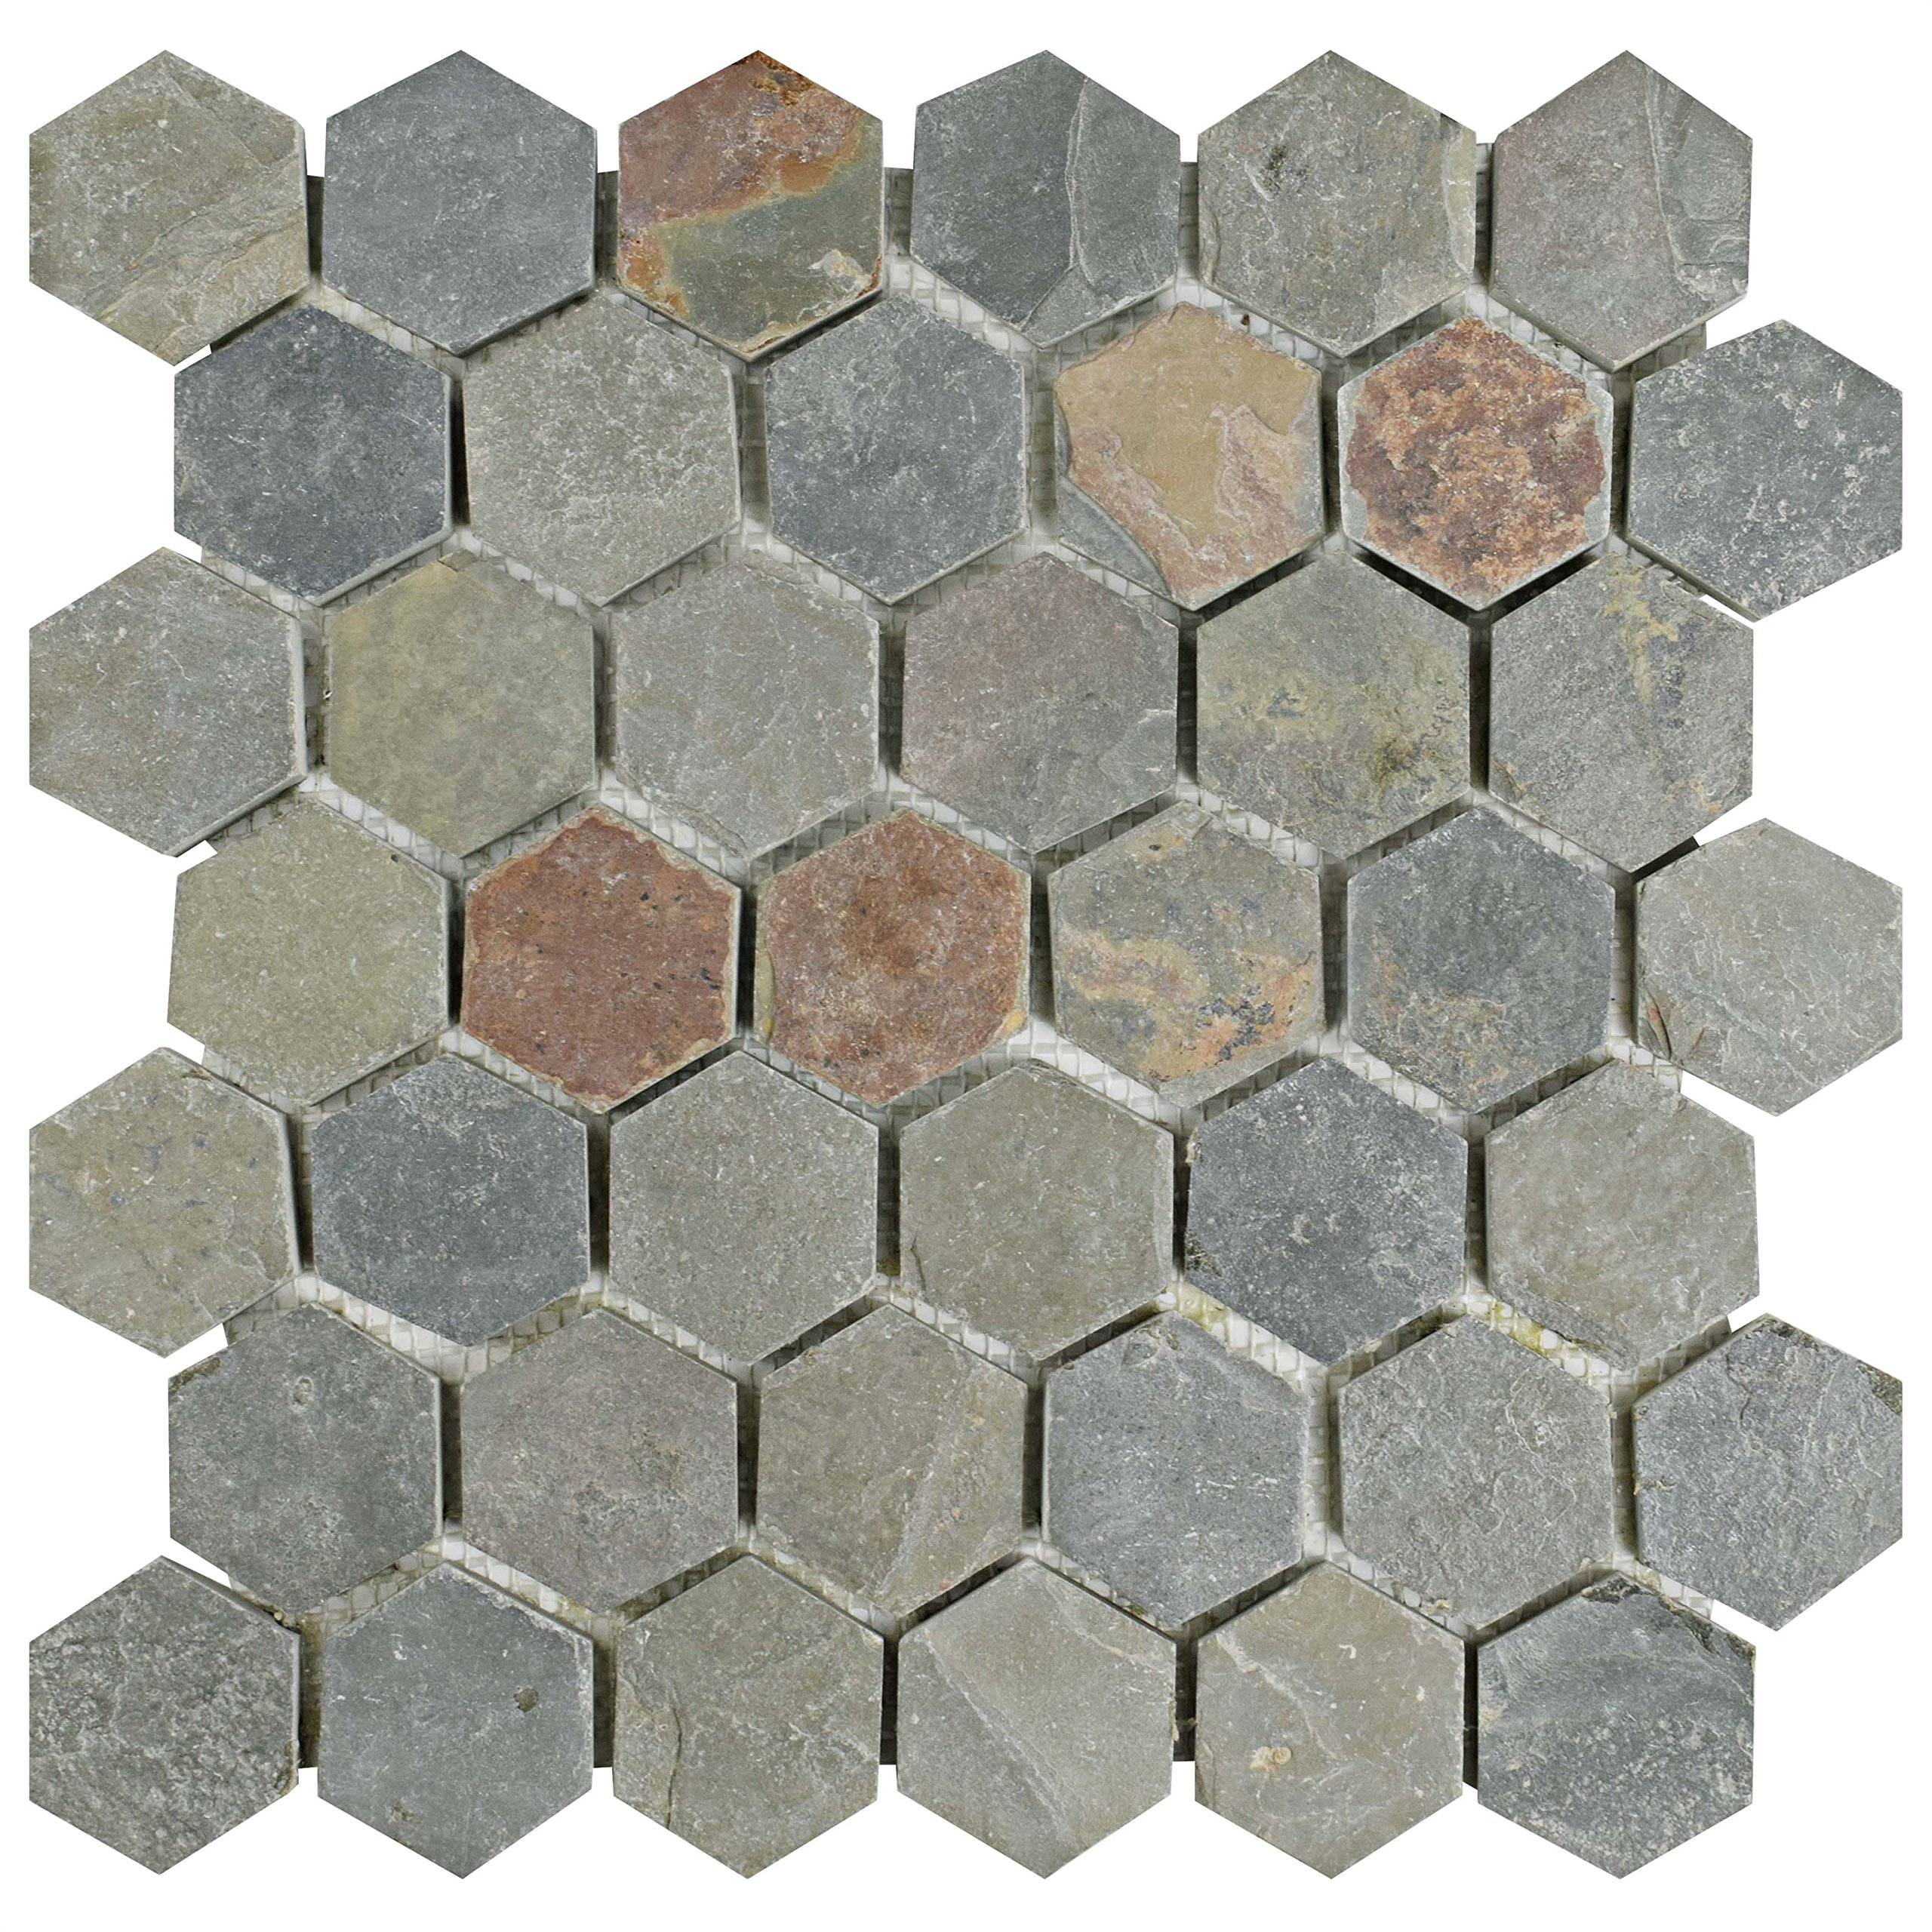 SomerTile SCRHXSM Cliff Hexagon Multi Slate Natural Stone Mosaic Floor and Wall Tile, 12'' x 12'', Grey/Red/Orange/Brown/Yellow by SOMERTILE